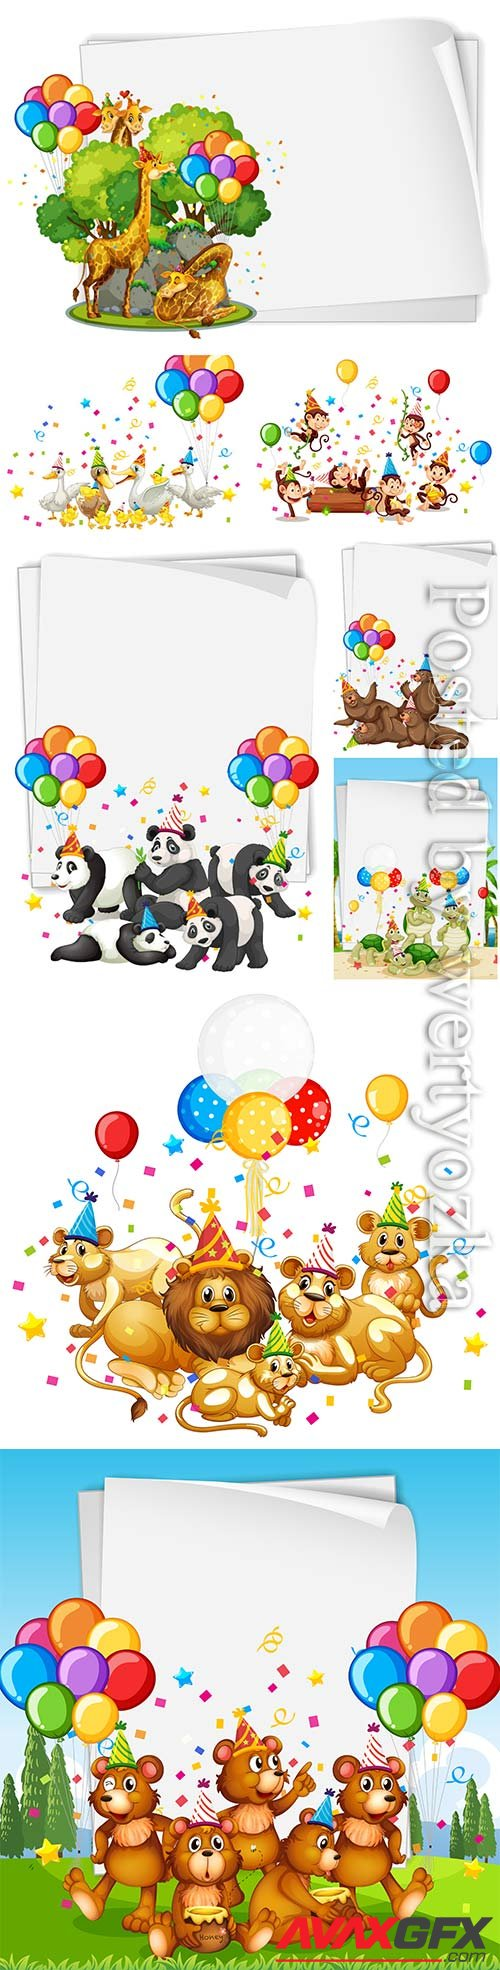 Cute animals in party theme premium vector